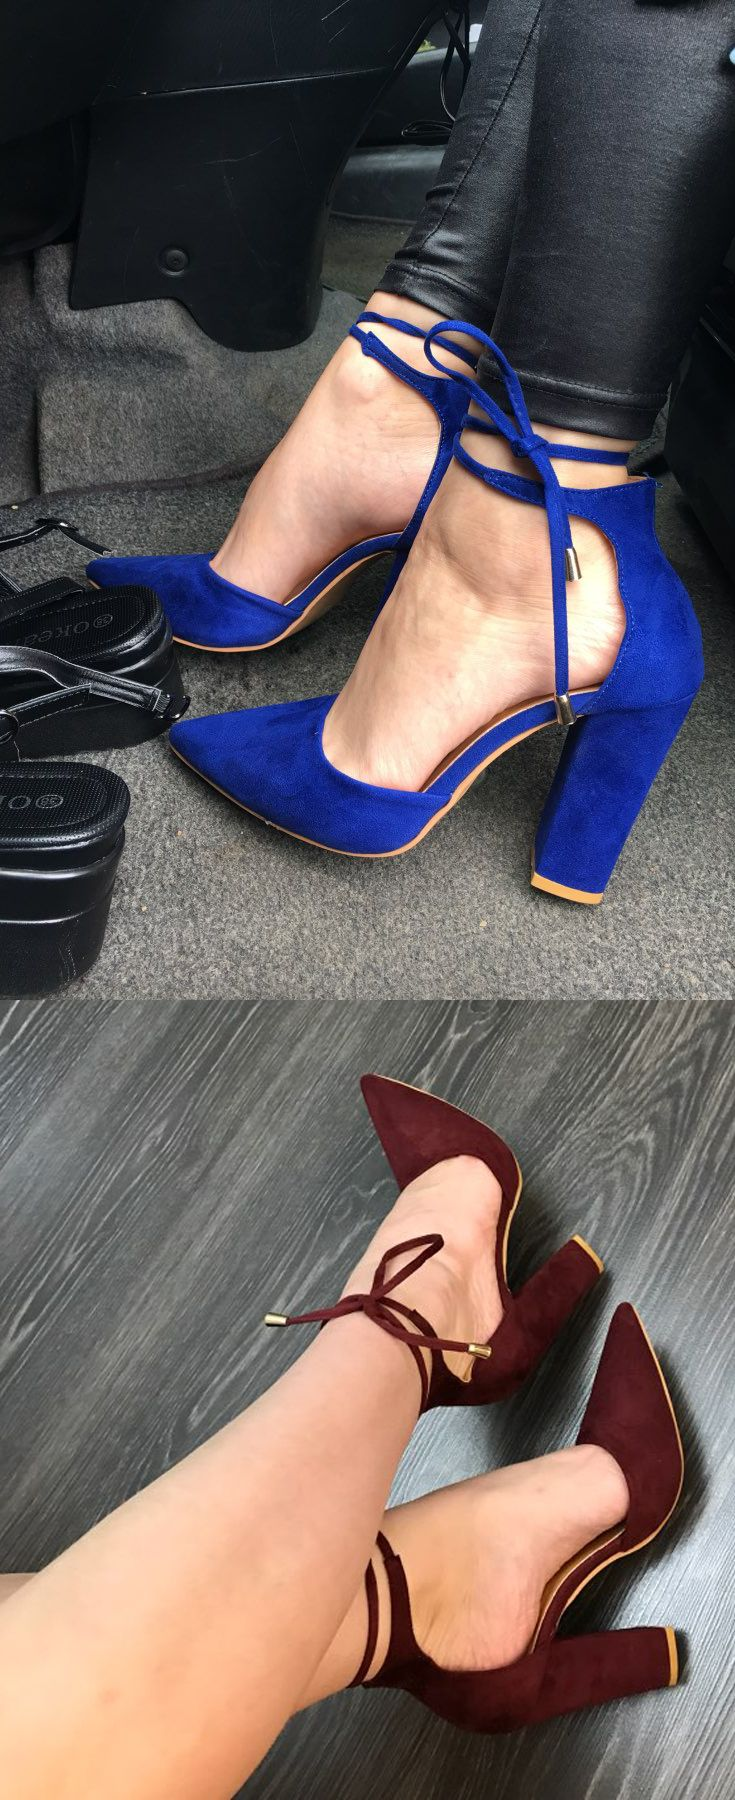 Buy the perfect casual heels, that work with any pair of jeans, dark denim, deep blue or ripped. These cute heels come in blue, black, red, deep blue, wine, tea, gray, purple, and brown.